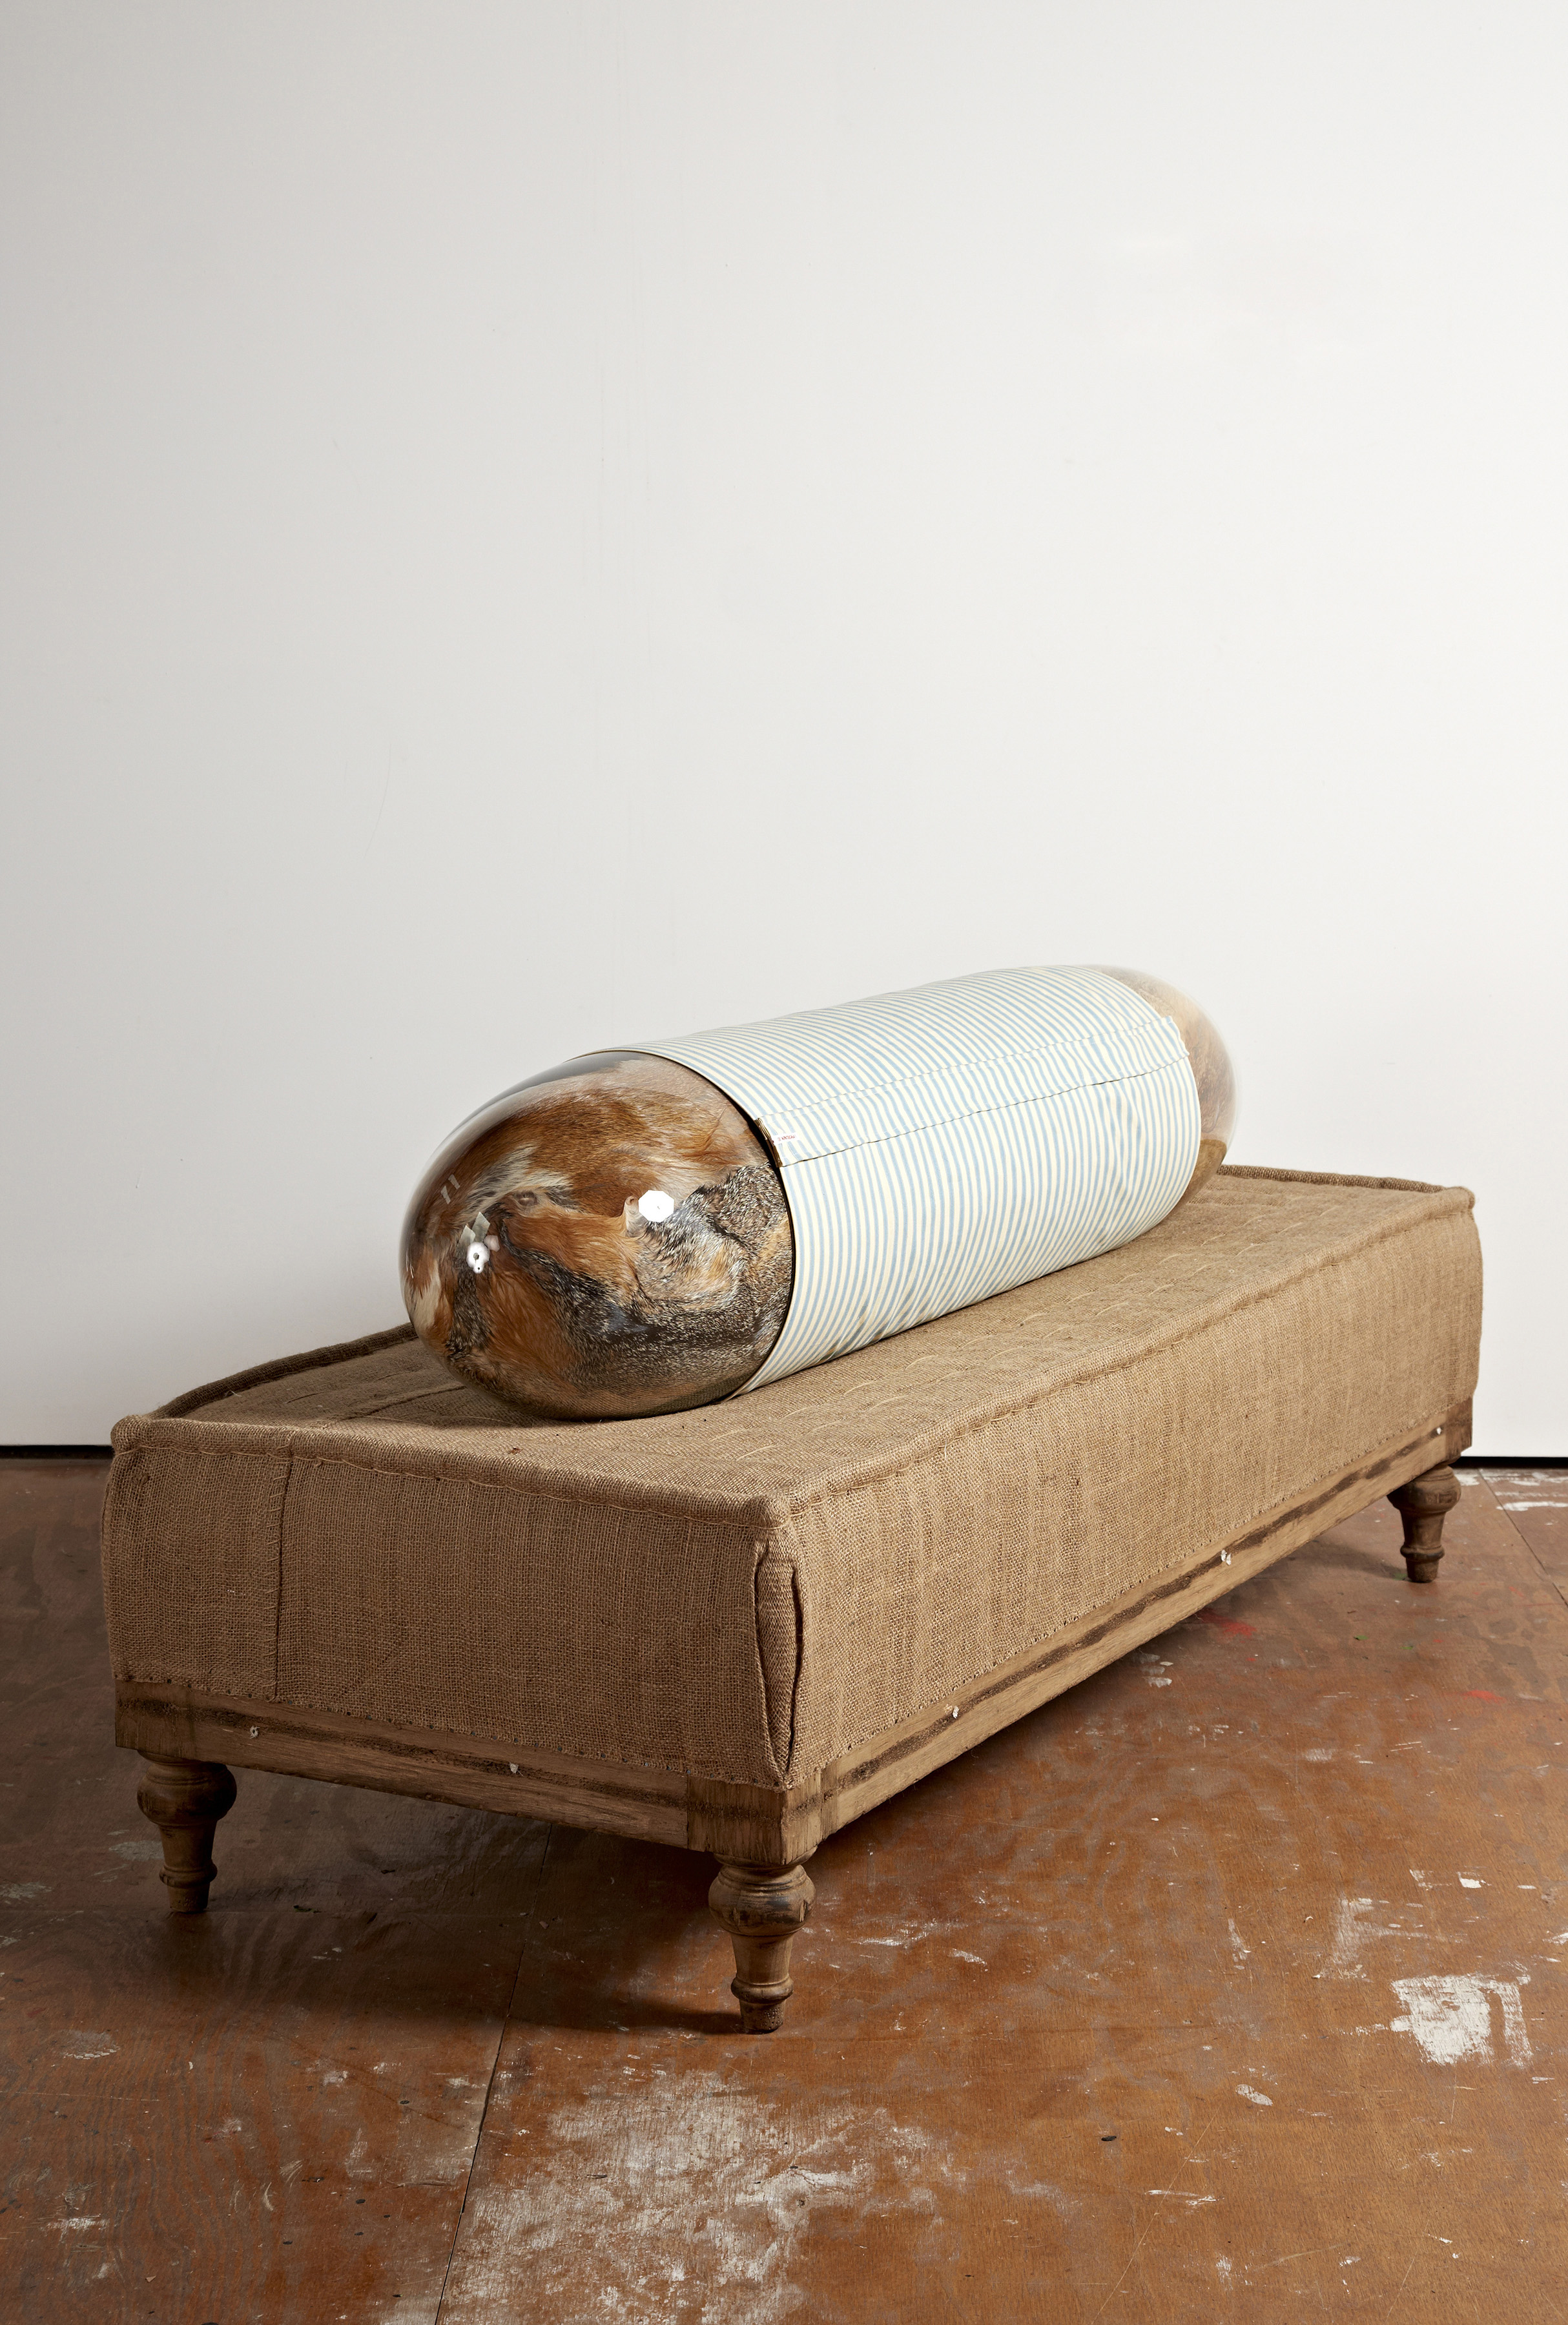 The Eclair I, 182 x 86 x 76cm, vintage fur, handblown glass, metal, pillow filler, fabric, nametag on ottoman rel=